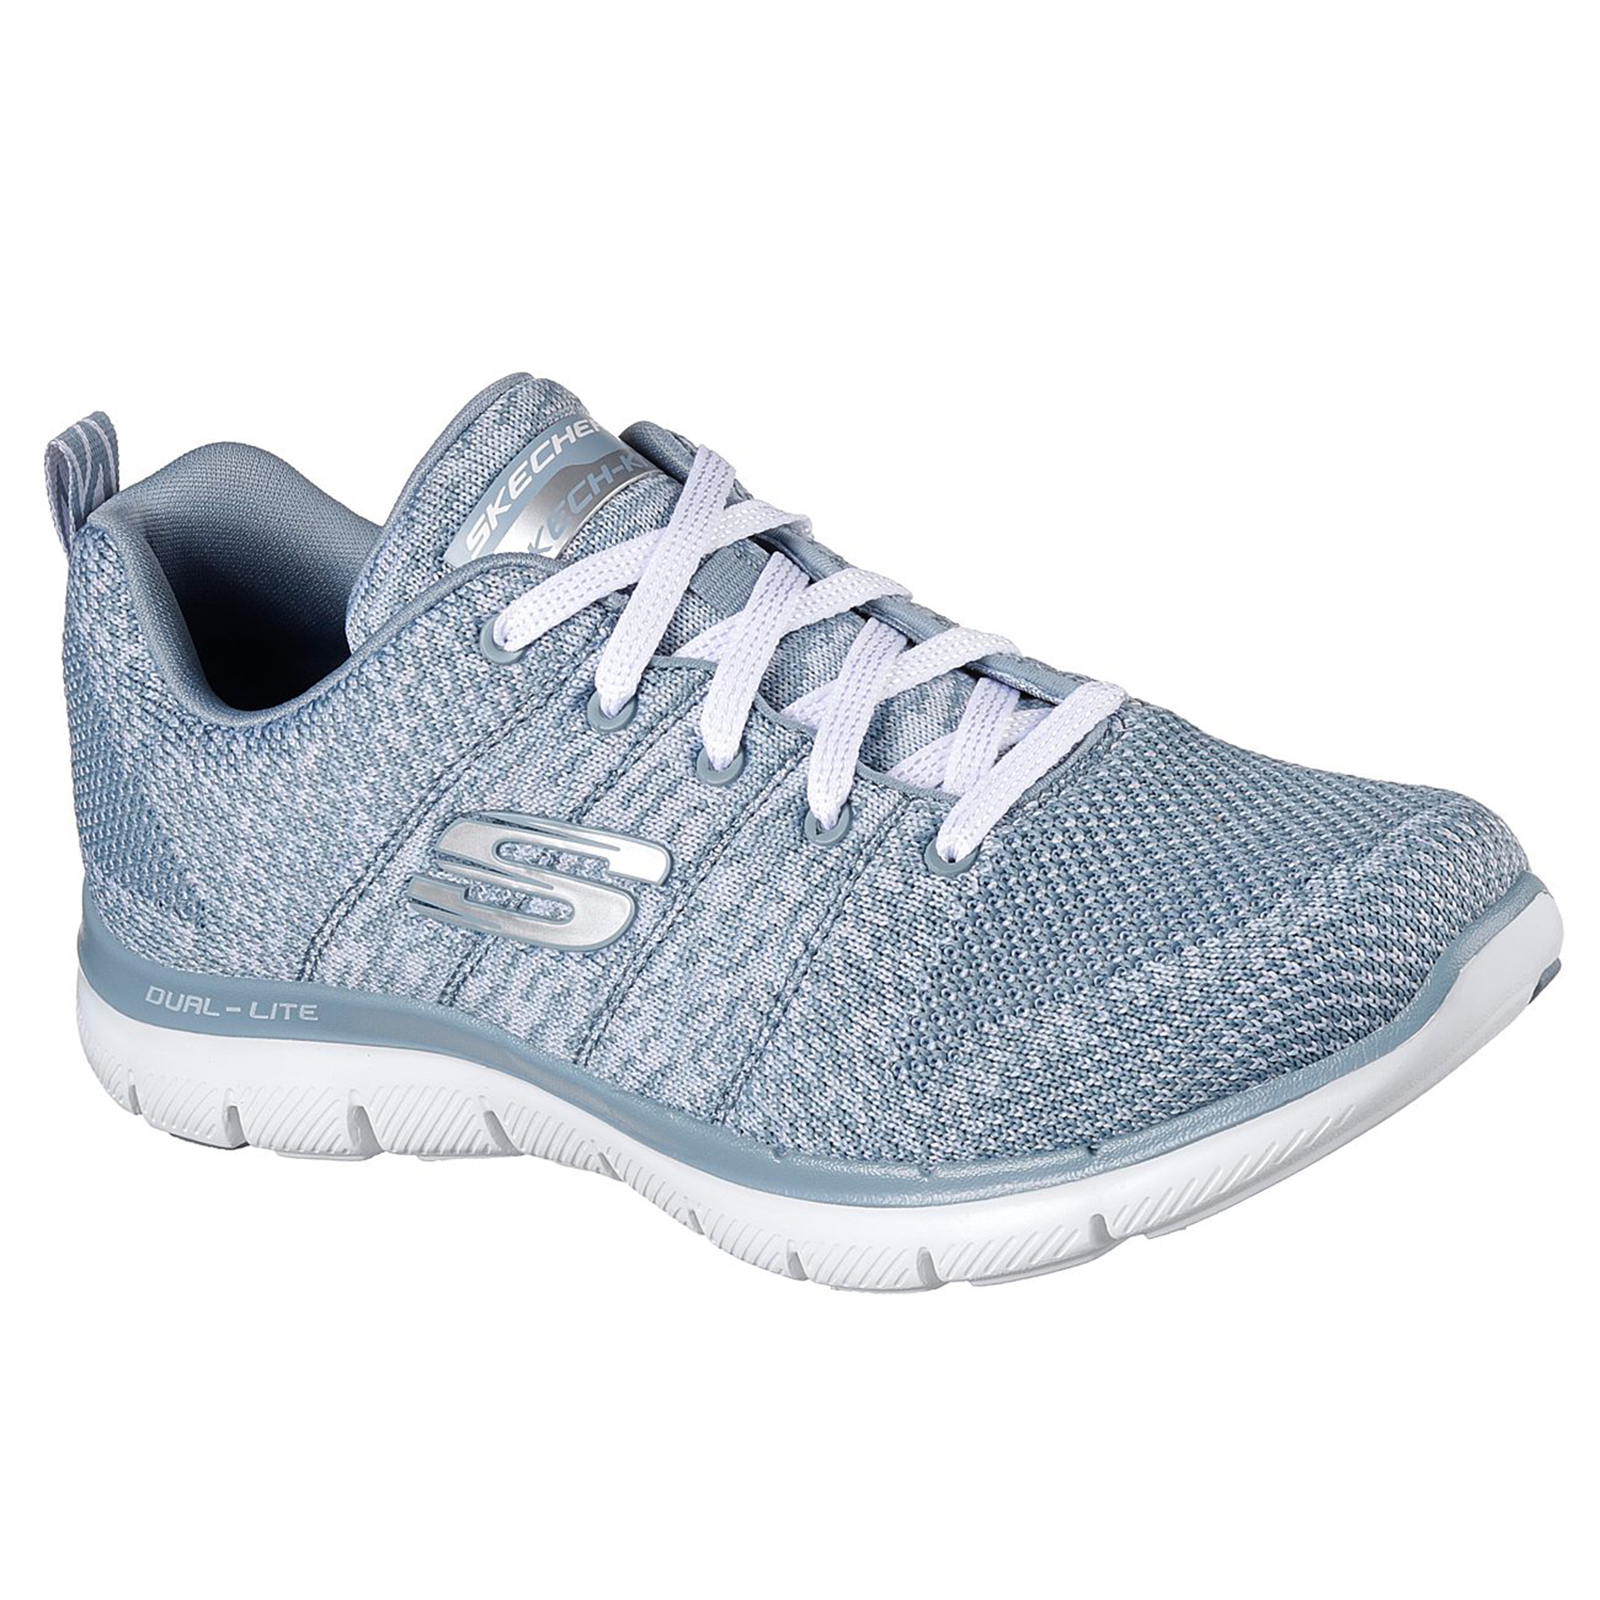 Skechers Damenschuhe High Sports Flex Appeal 2.0 High Damenschuhe Energy Trainer Soft Fitness Running e94123